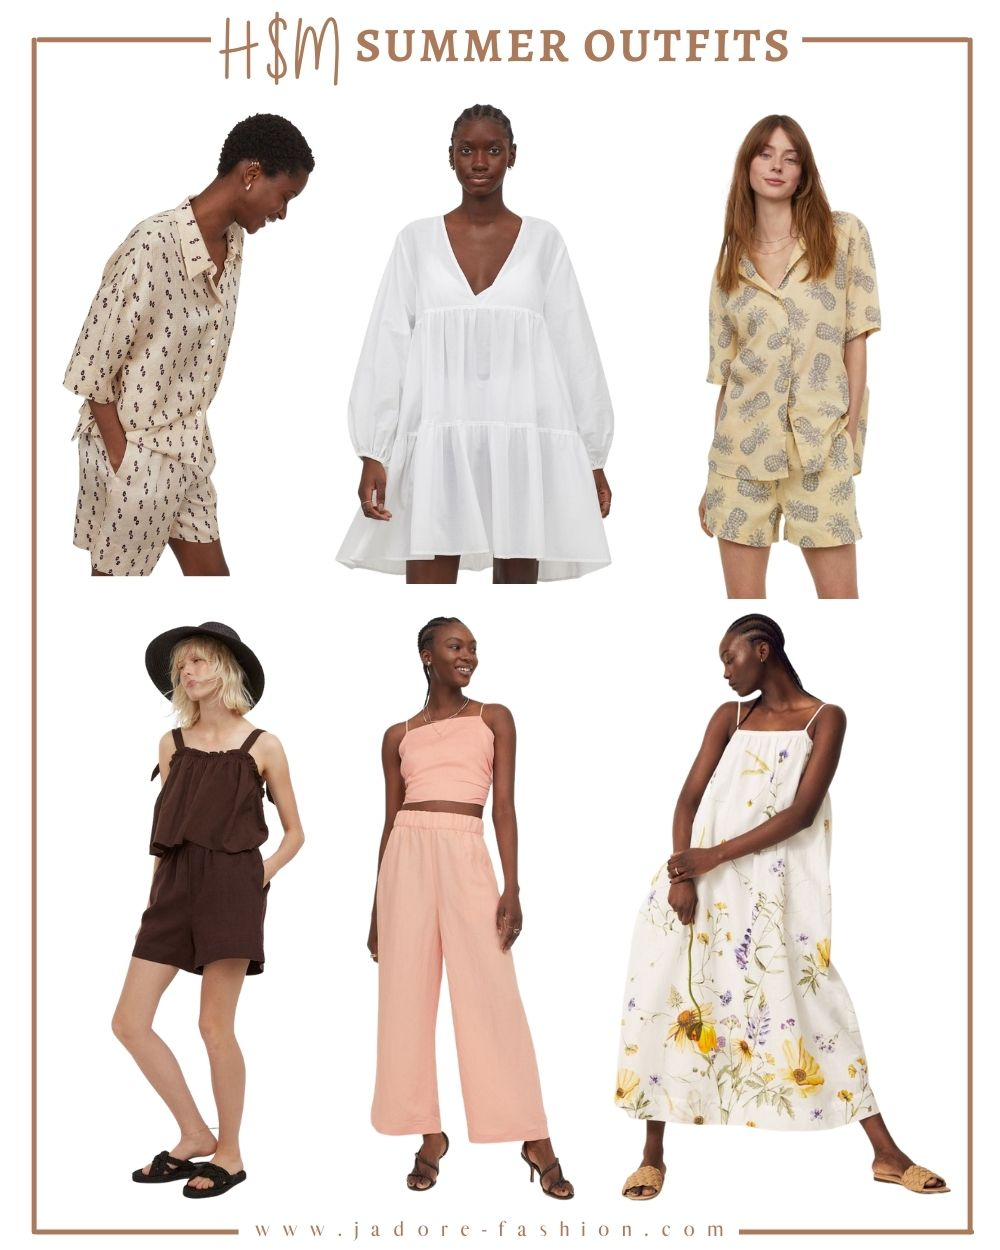 stella-adewunmi-of-jadore-fashion-blog-what-to-buy-for-summer-from-hm